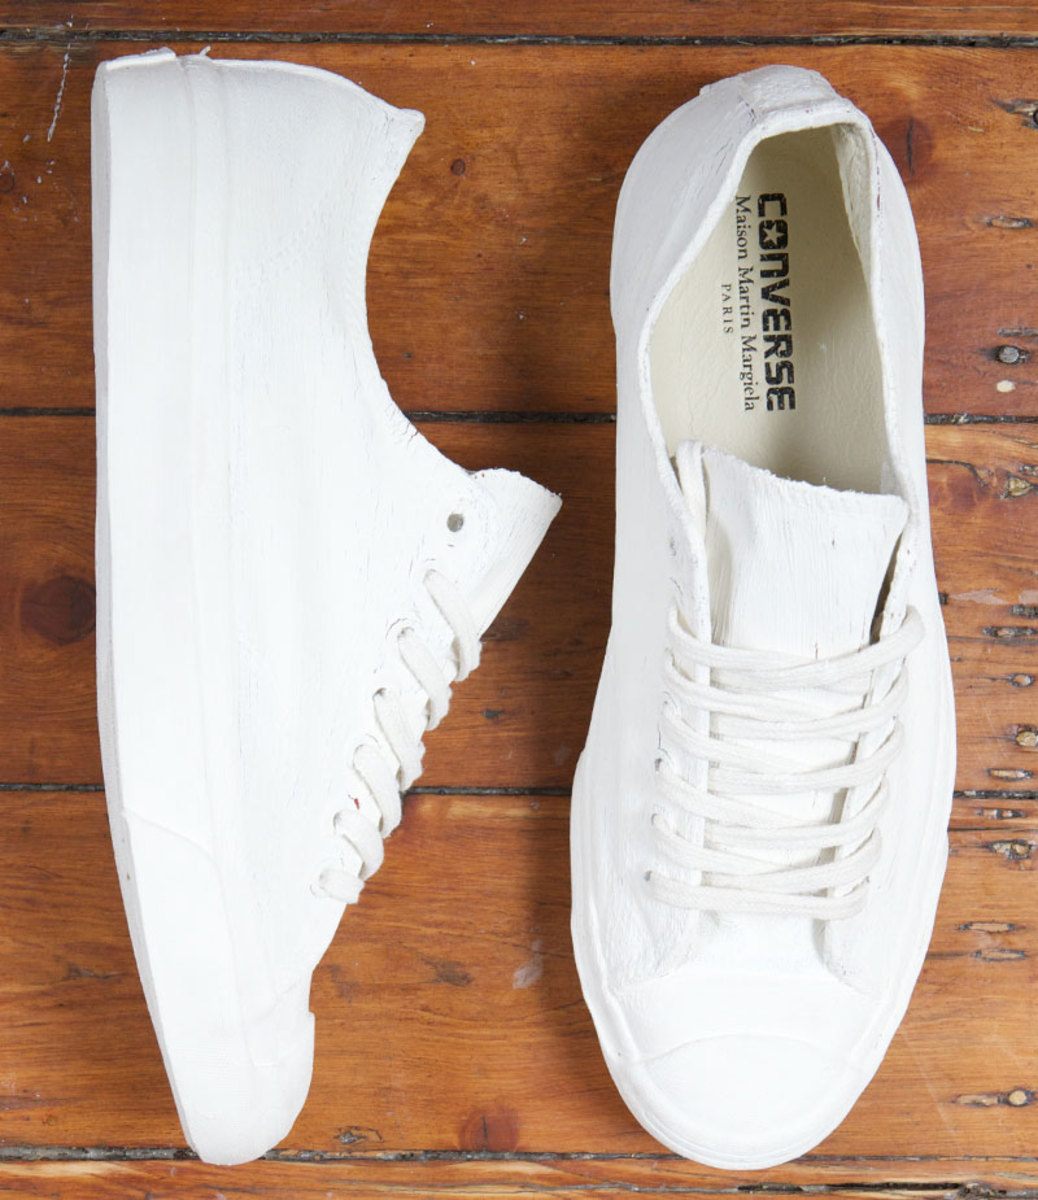 converse-x-maison-martin-margiela-jack-purcell-5_0